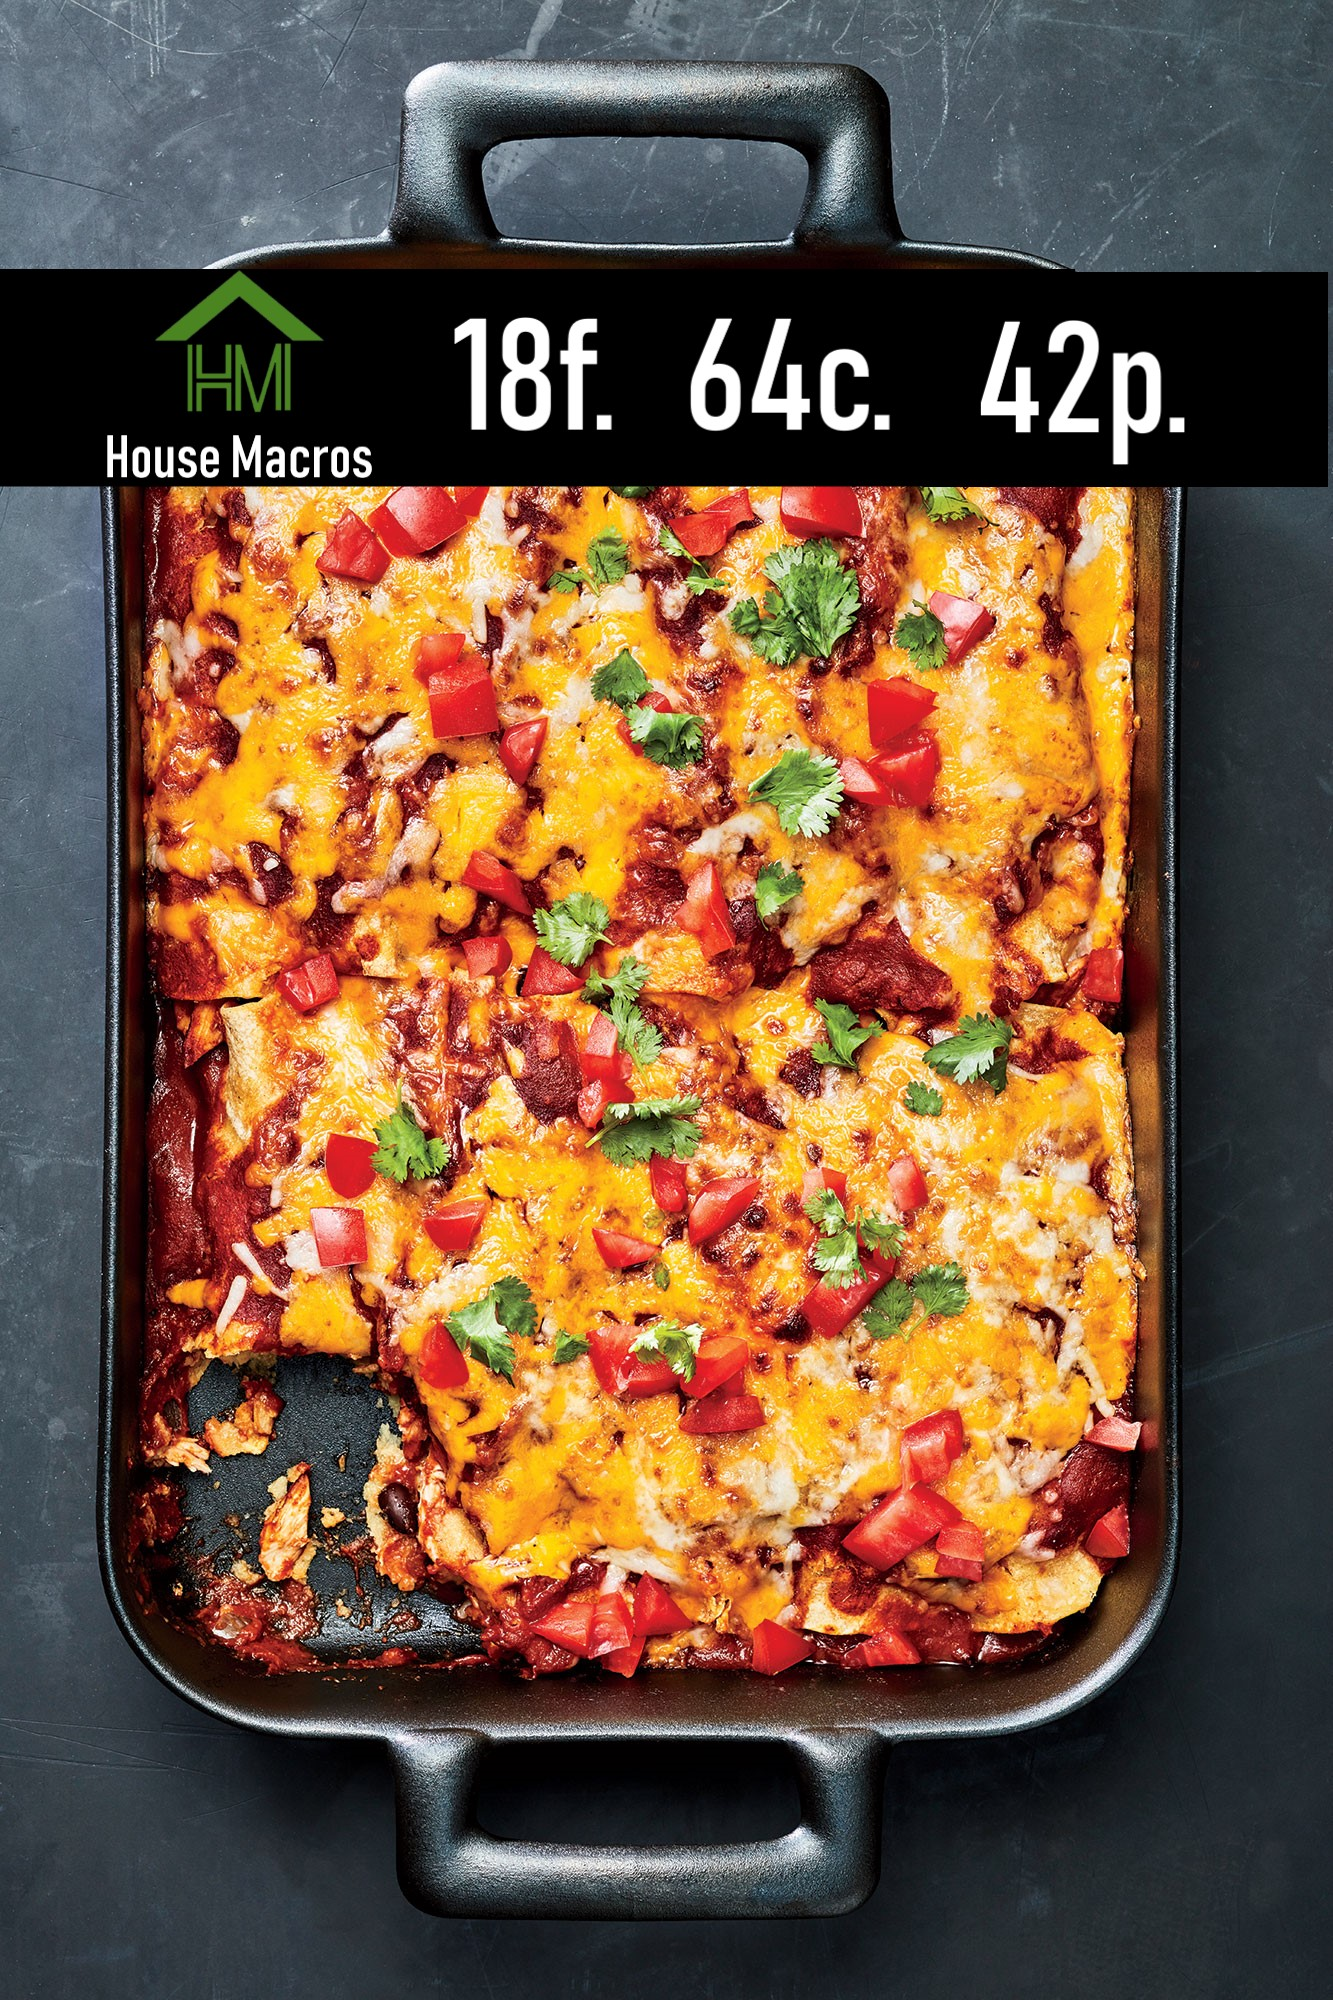 Nutrition Information Serves: 8-10 Serving Size: 1 equal part Calories: 571 / Fat: 18g / Carbs: 64g / Protein: 42g